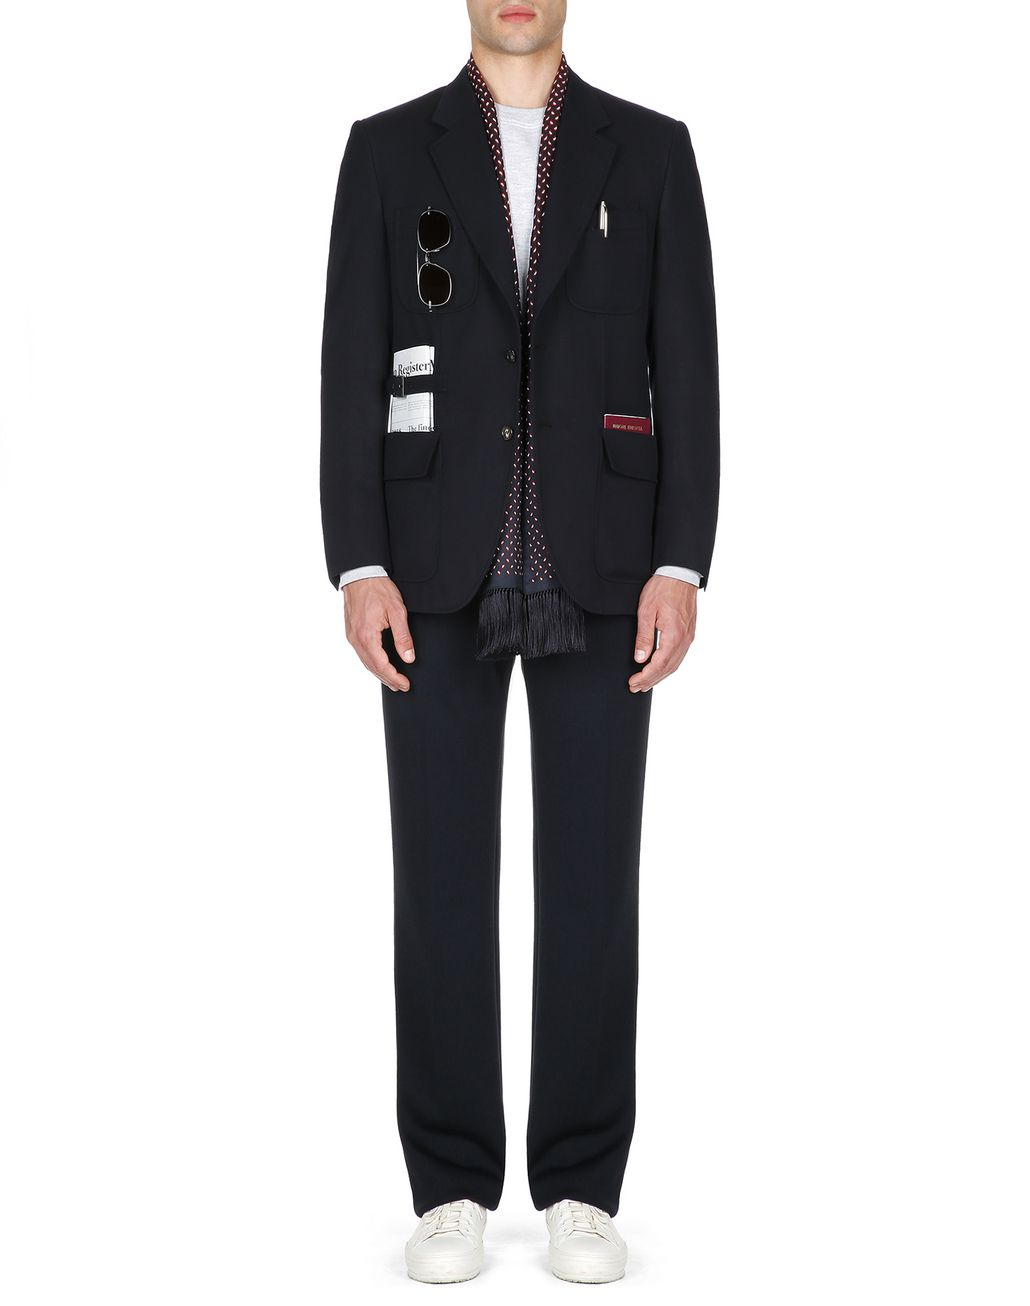 BRIONI Veste New Travel bleu marine Formal Jacket Homme r